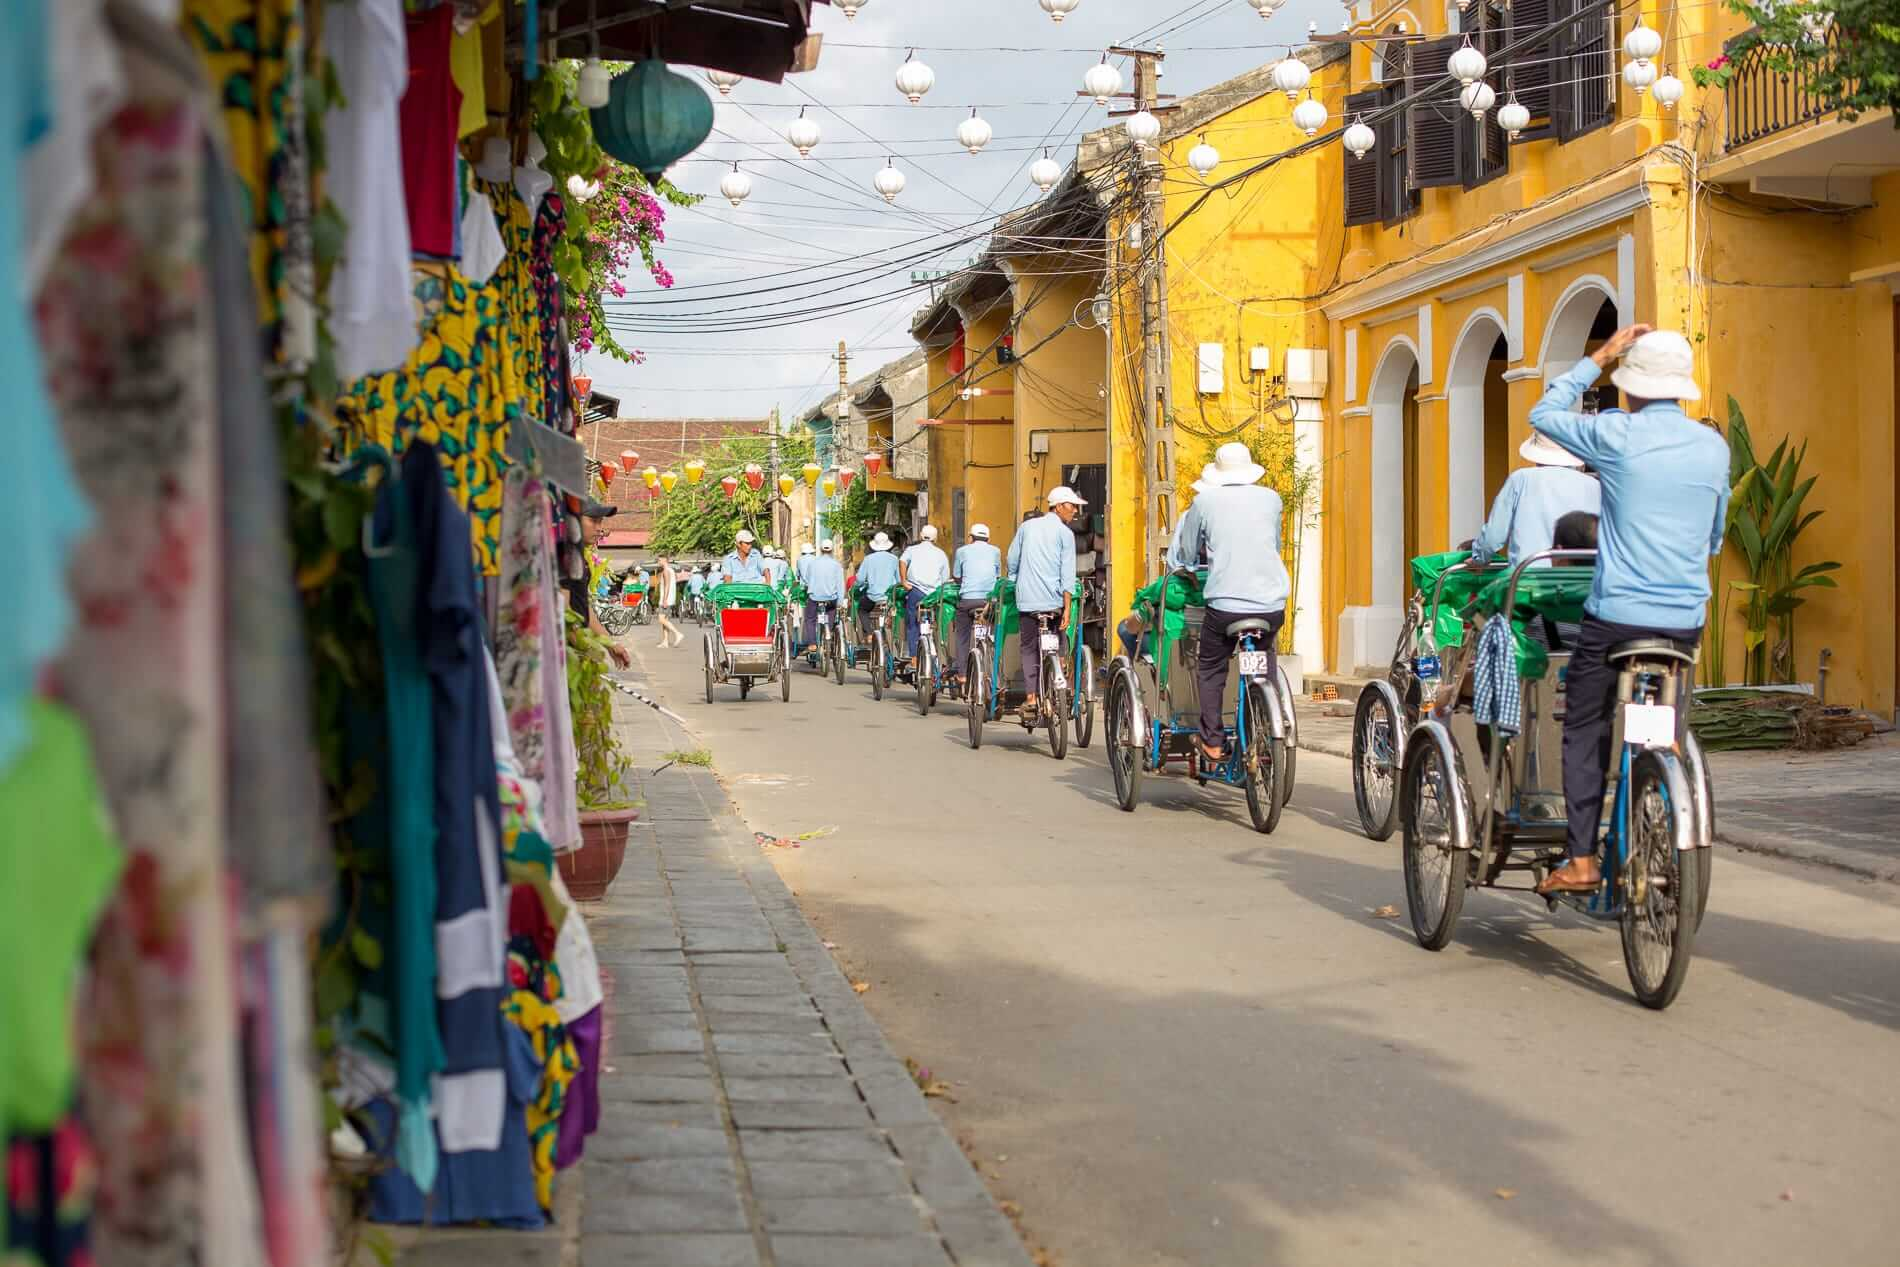 Ride a cyclo as one the romantic things you can do in Hoi An